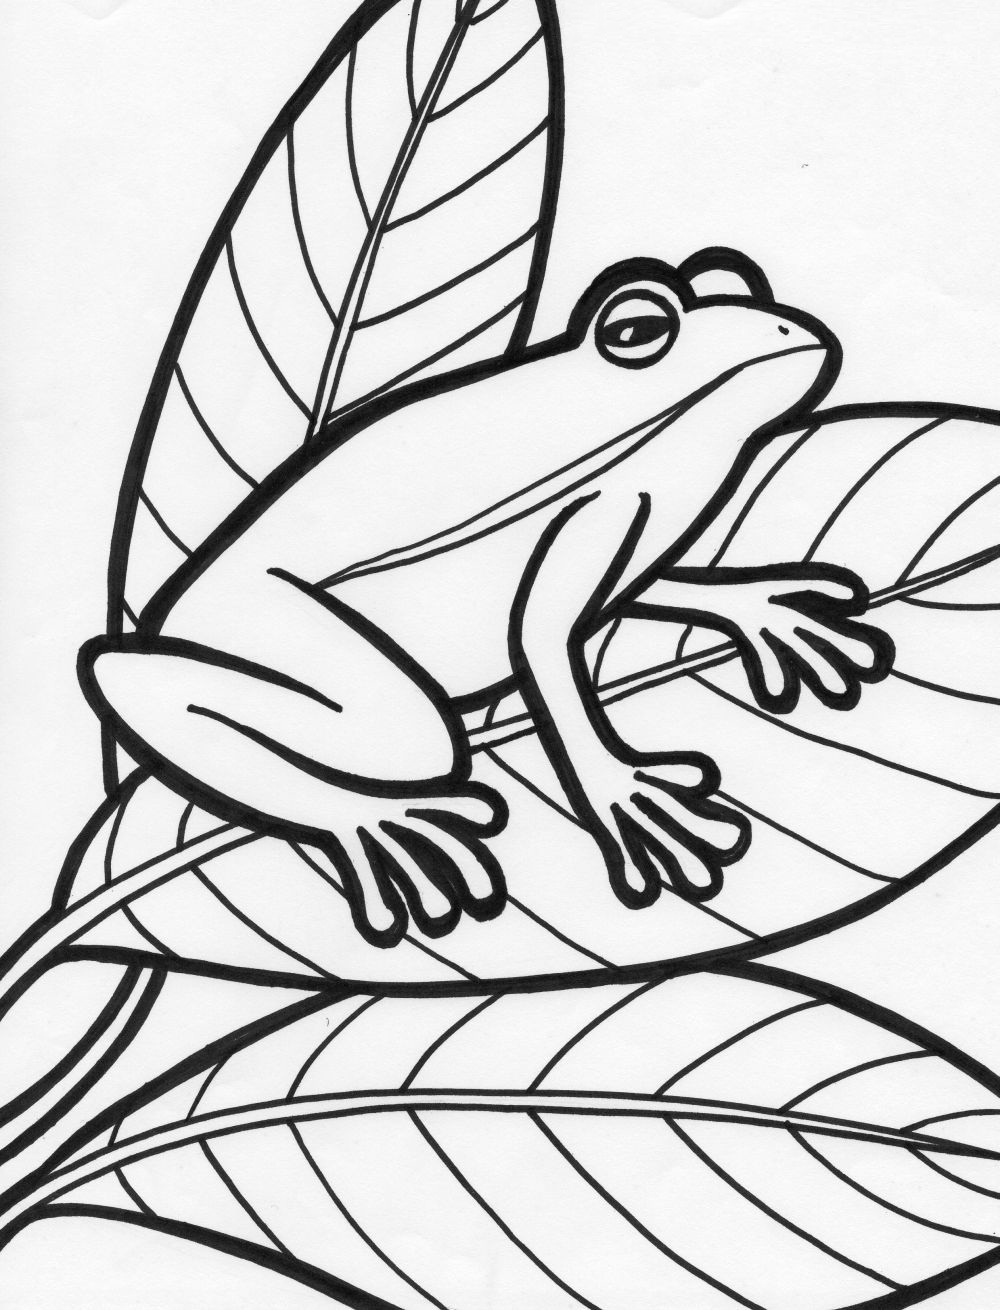 pictures of frogs to color free frog coloring pages to print out and color frogs to of pictures color